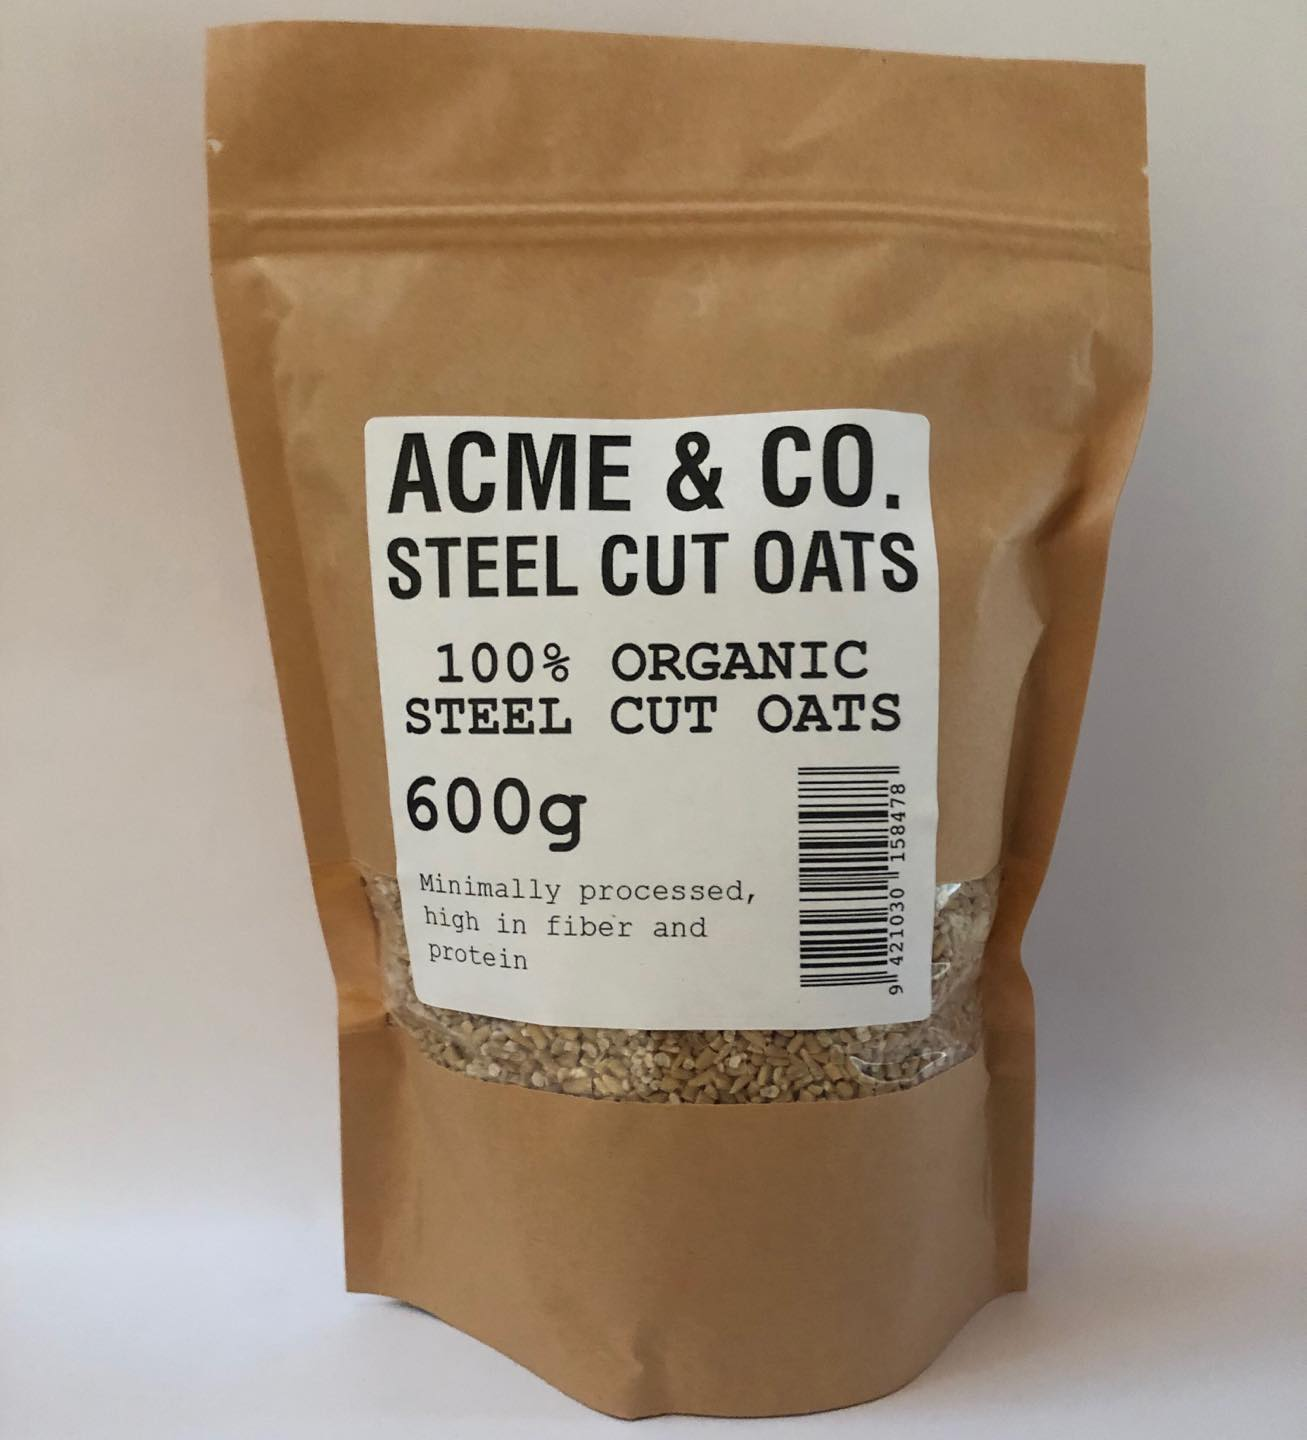 ACME STEEL CUT OATS